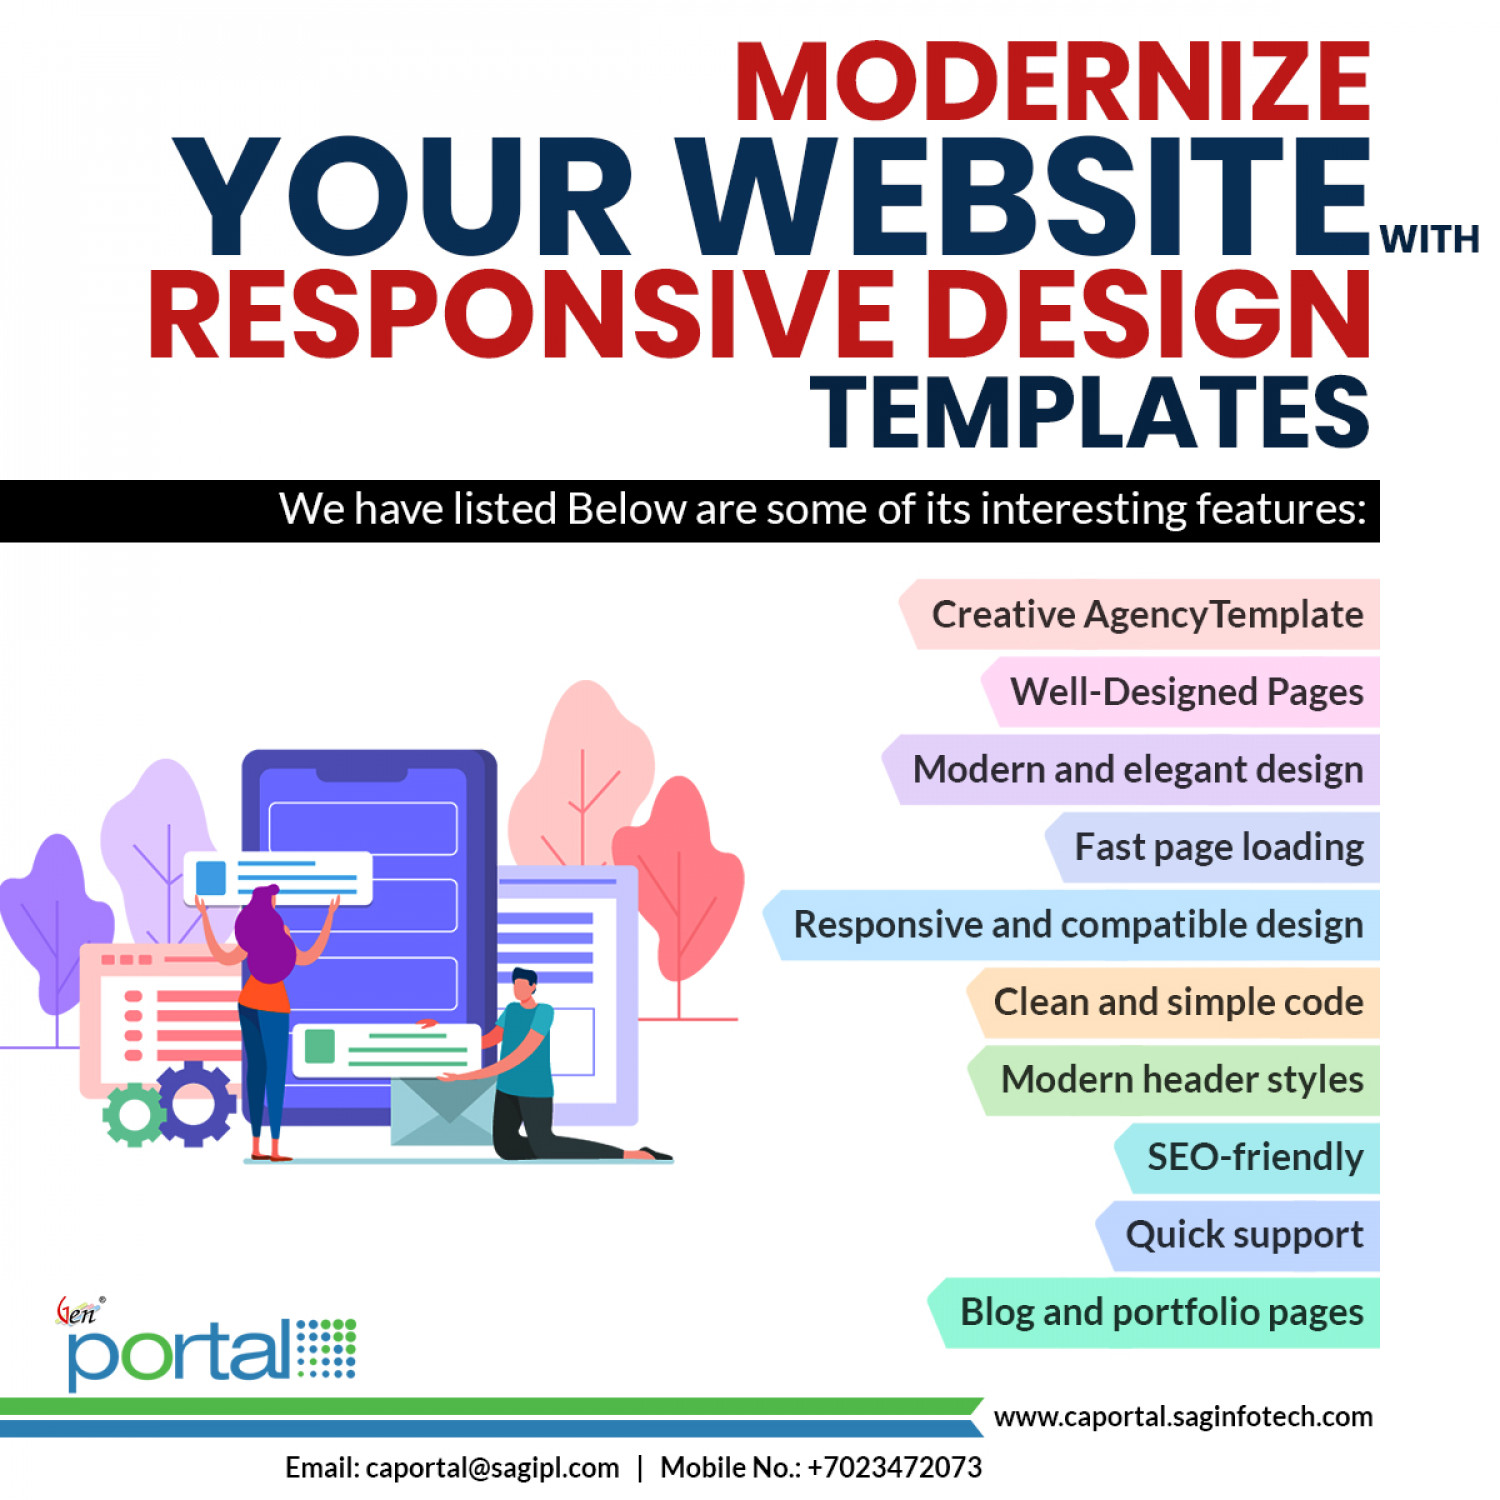 Popular Modern Website Templates For Professionals 2020 Infographic